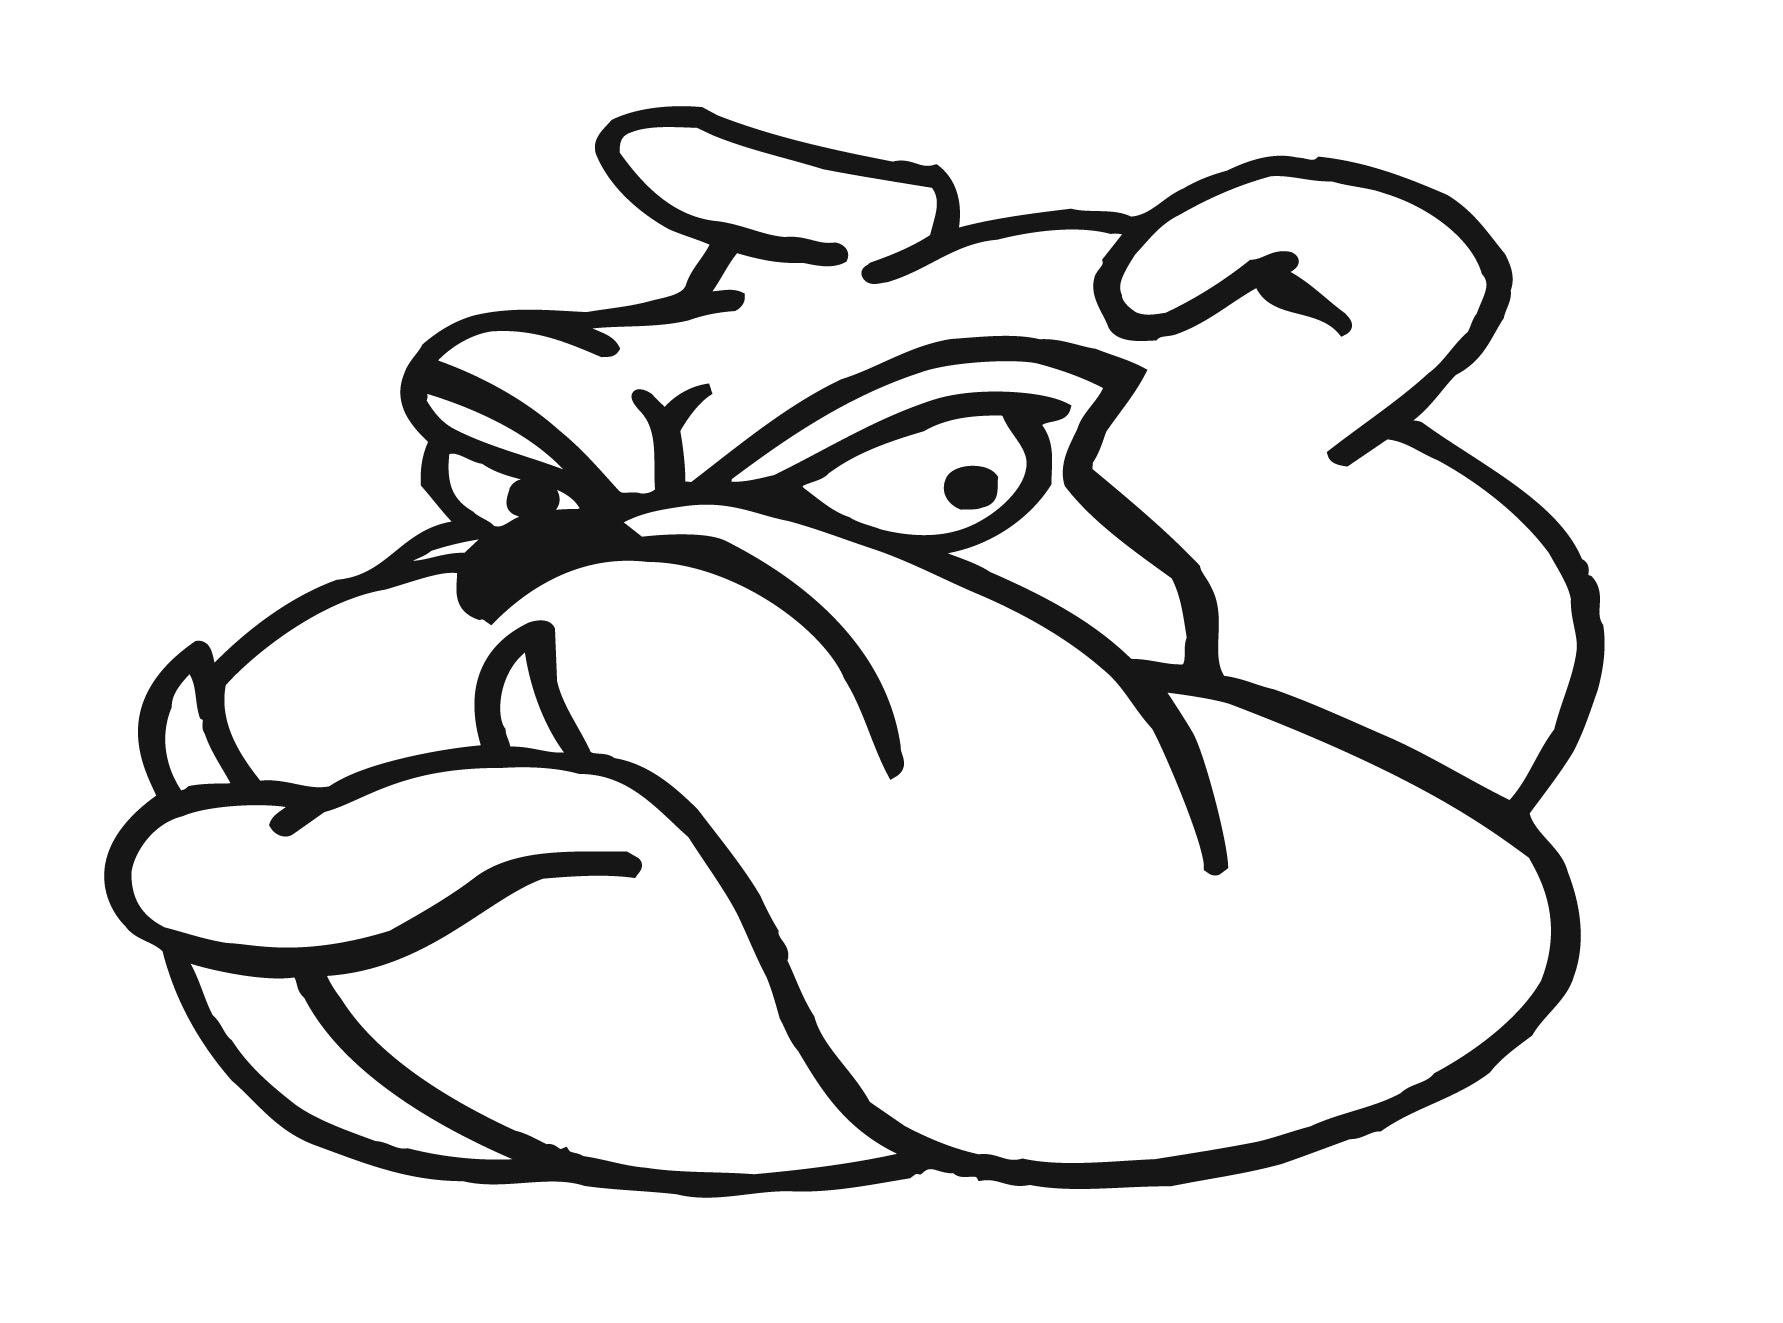 bulldog outline clipart 20 free Cliparts | Download images ...